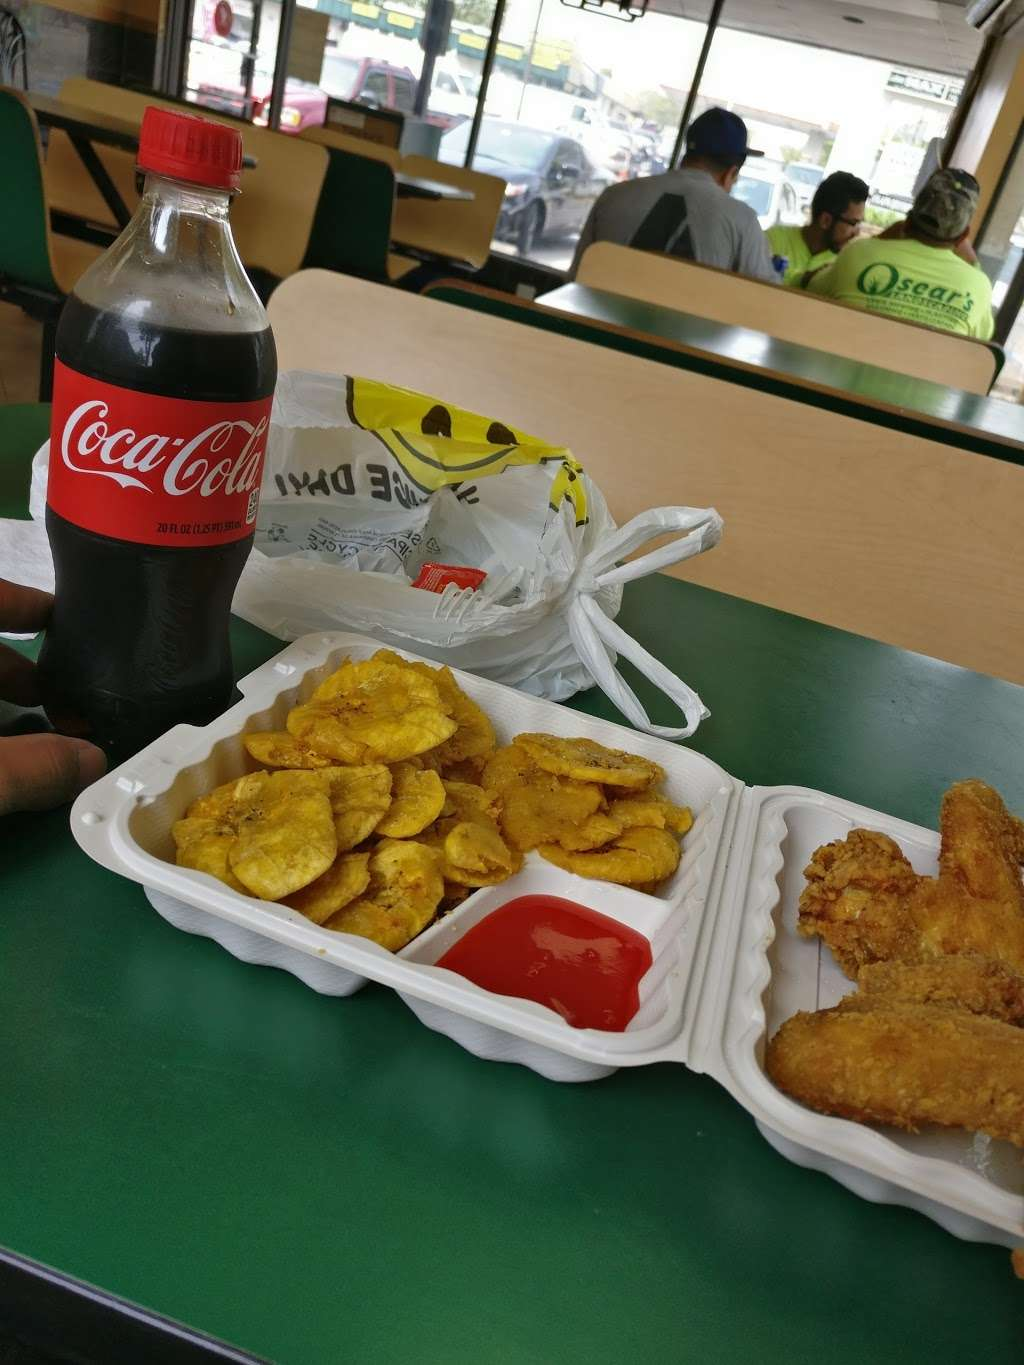 Eastern Carryout - meal takeaway  | Photo 4 of 4 | Address: 8555 Piney Branch Rd, Silver Spring, MD 20901, USA | Phone: (301) 588-7688